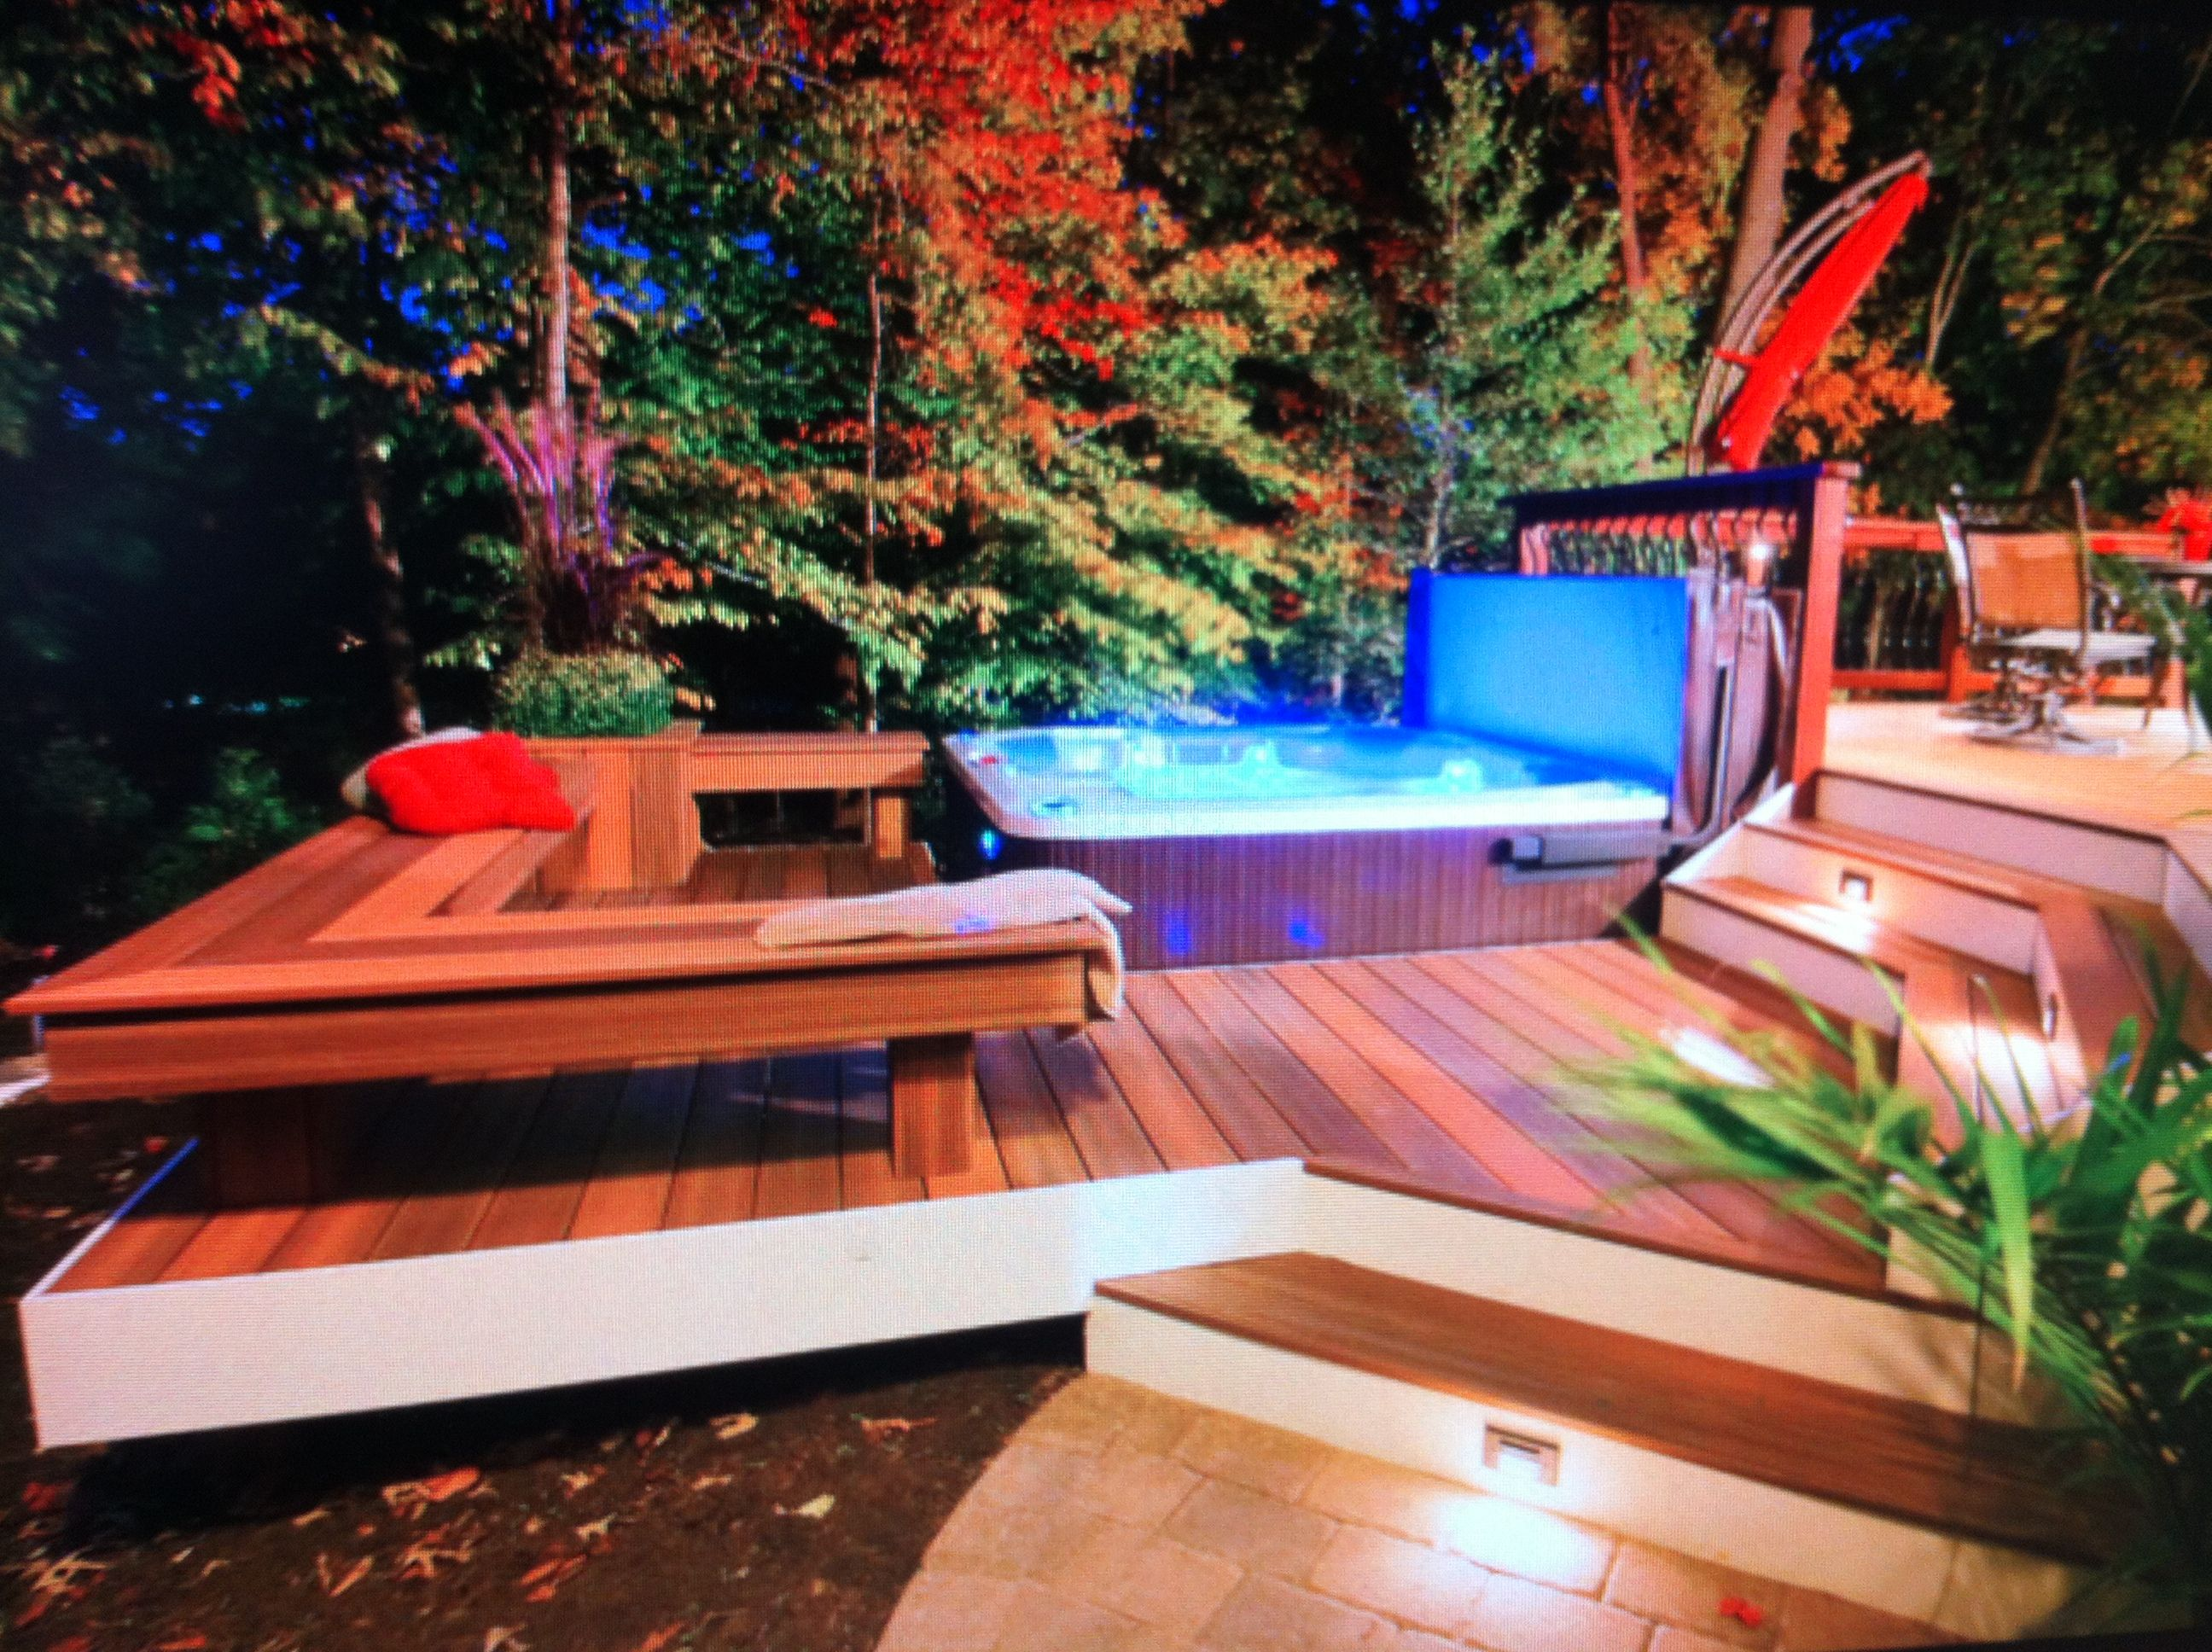 for lights your orange wooden not tub the backyard pin irresistible of maybe deck idea designs portland ground tubs but color different hot instead in spa a